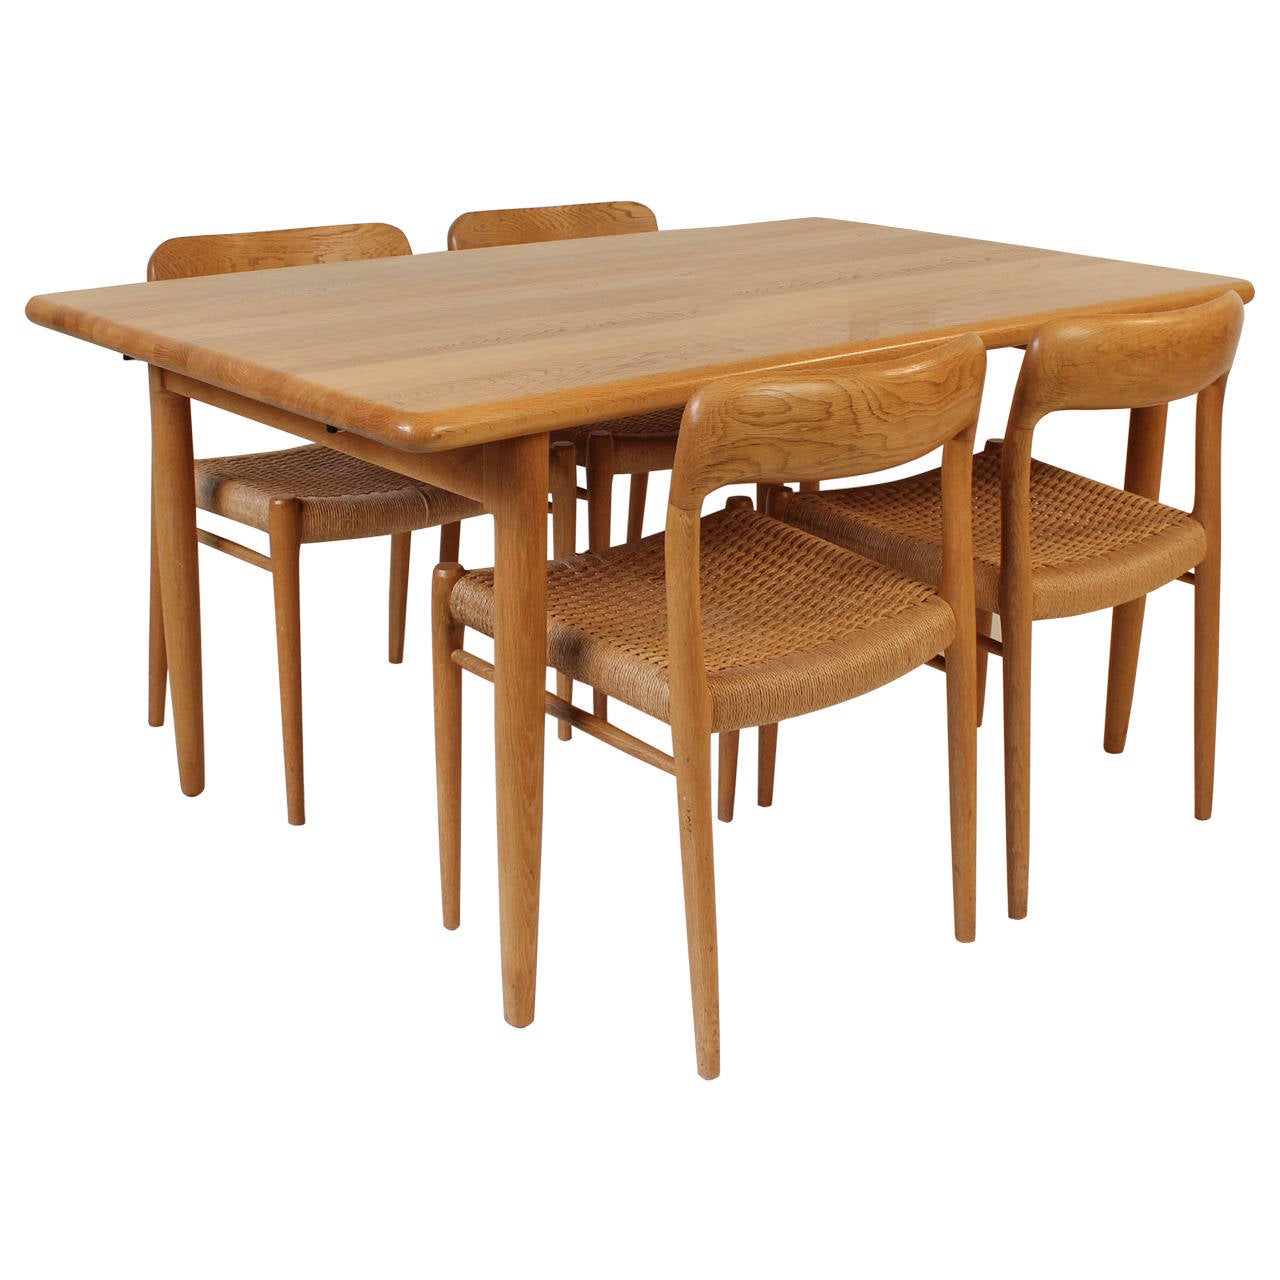 mid century modern dining room set by niels otto m ller for j l